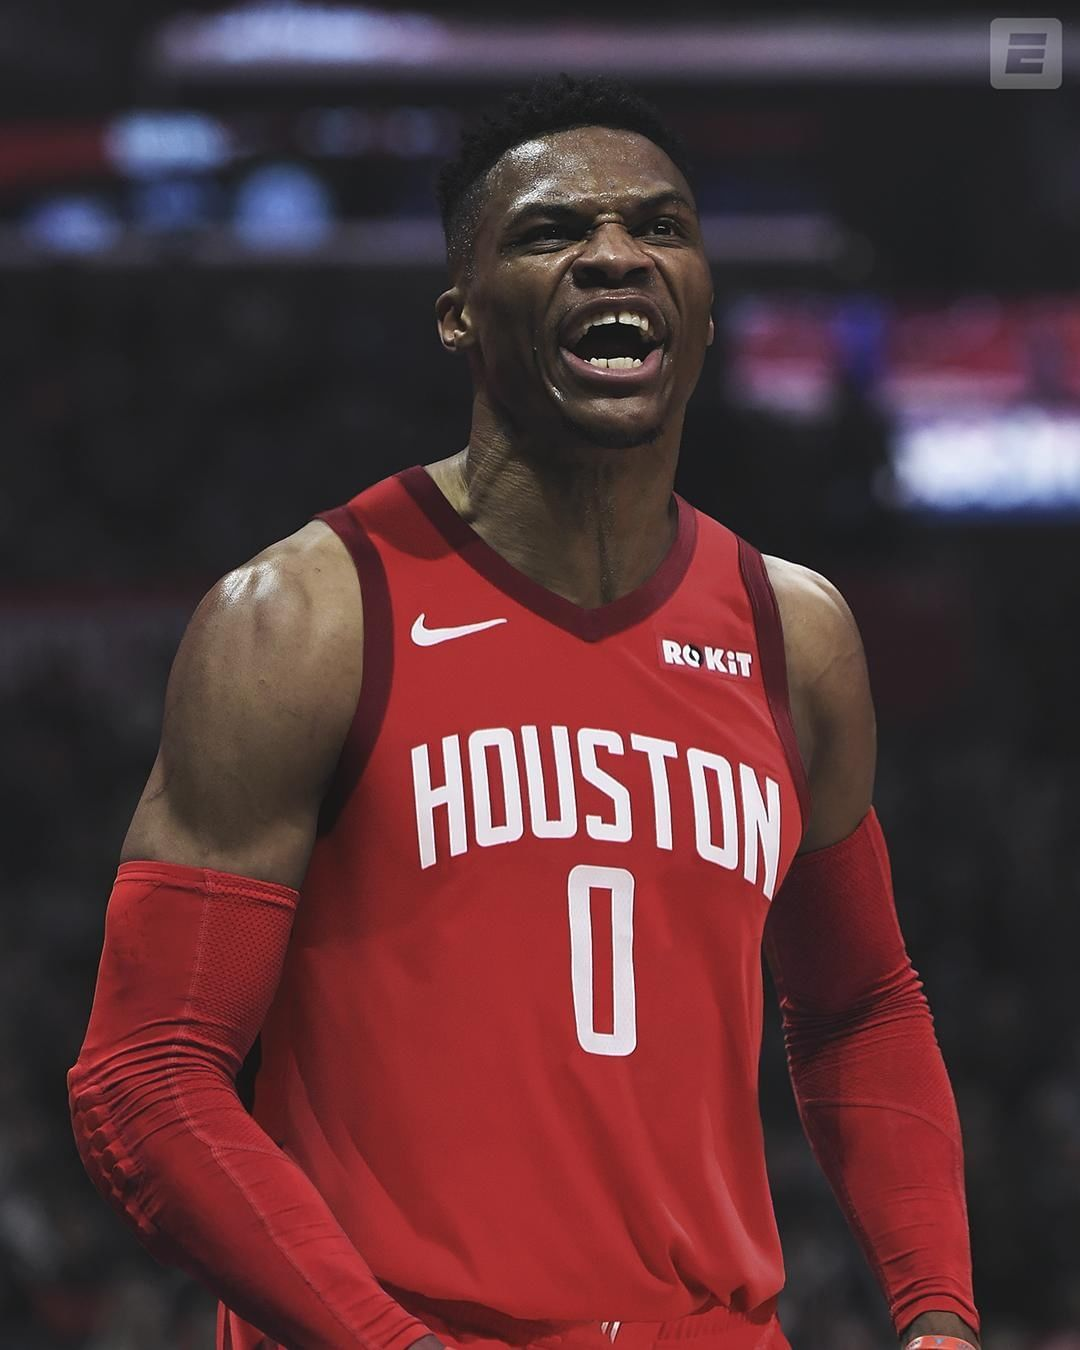 Basketball Forever On Instagram Russell Westbrook Is About To Revert To Beastbrook Again For The Washington Wi Washington Wizards Westbrook Russell Westbrook